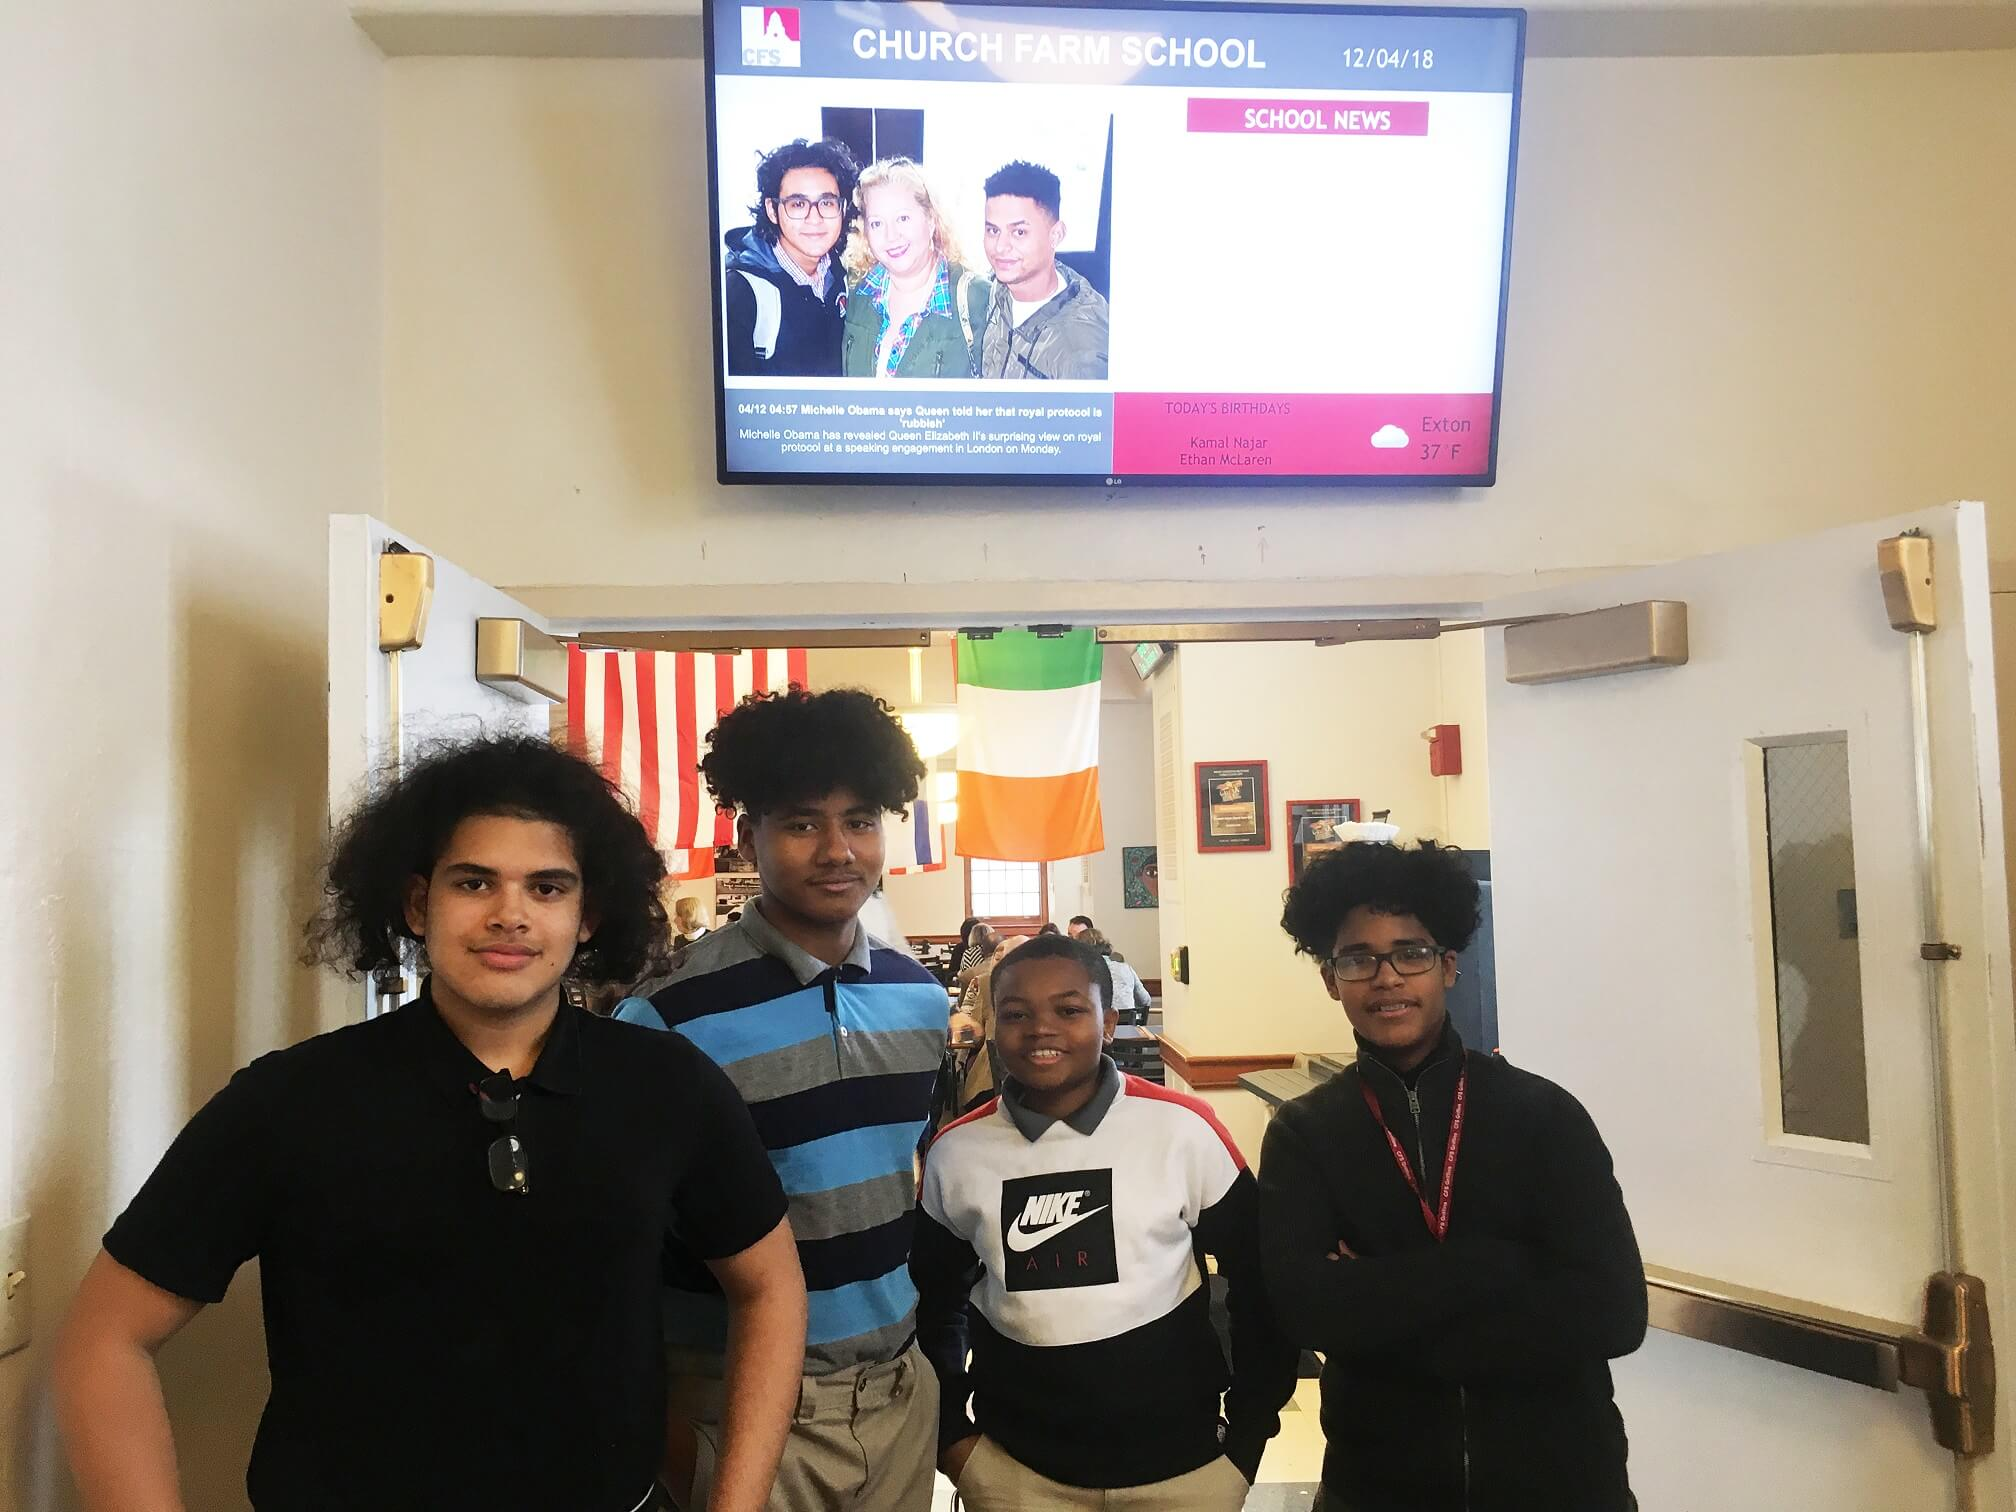 Local Tech Company Donates Monitors to CFS for Digital Signage, Residential Life Programs